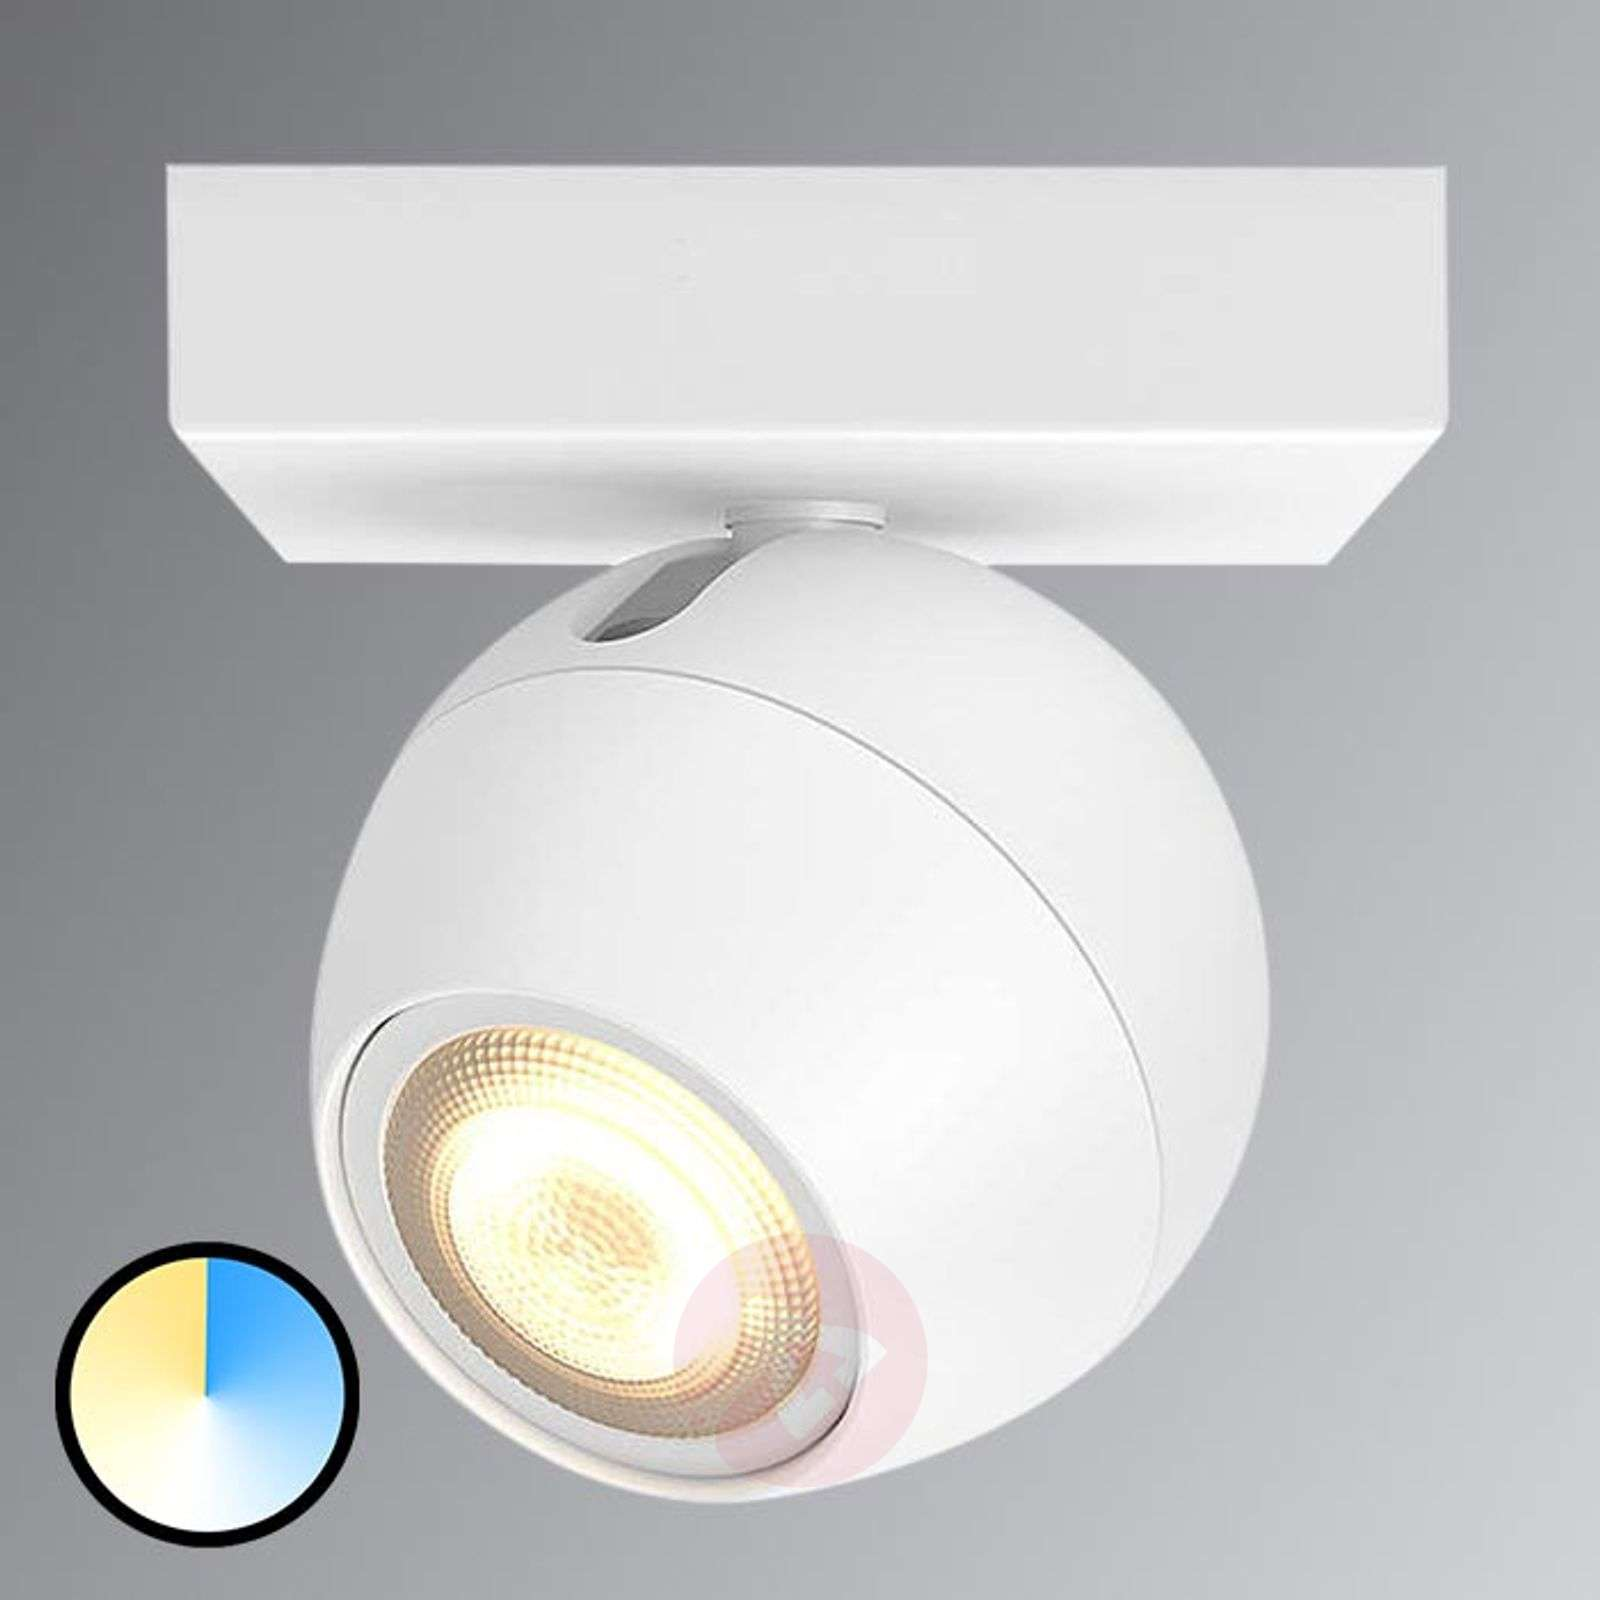 Opdateret Philips Hue Buckram - met 1 lamp. LED spot in wit | Lampen24.nl QM01